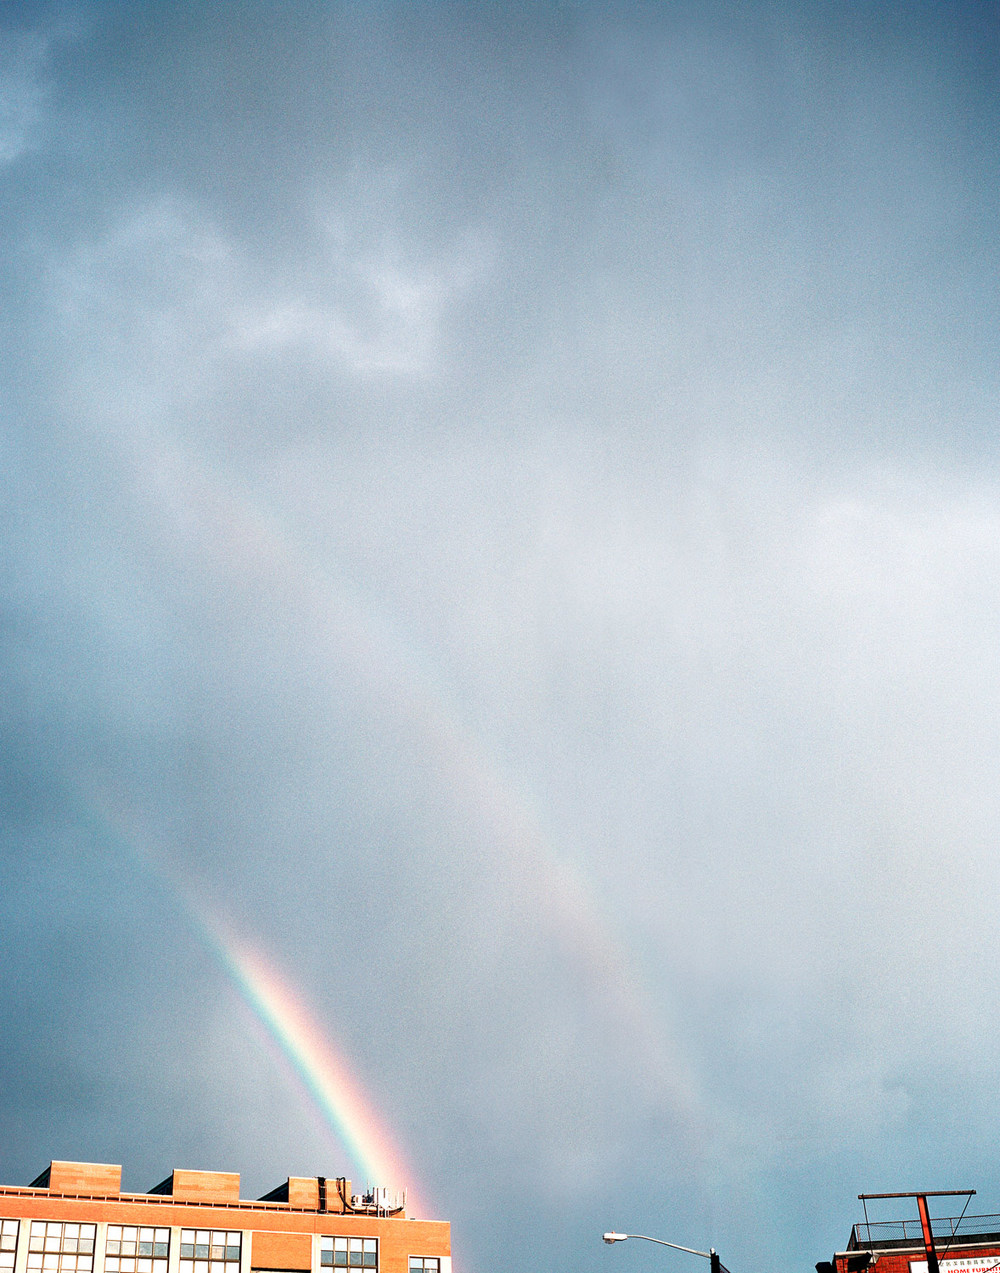 Double-rainbow-in-Bushwick_28,15x35,01.jpg